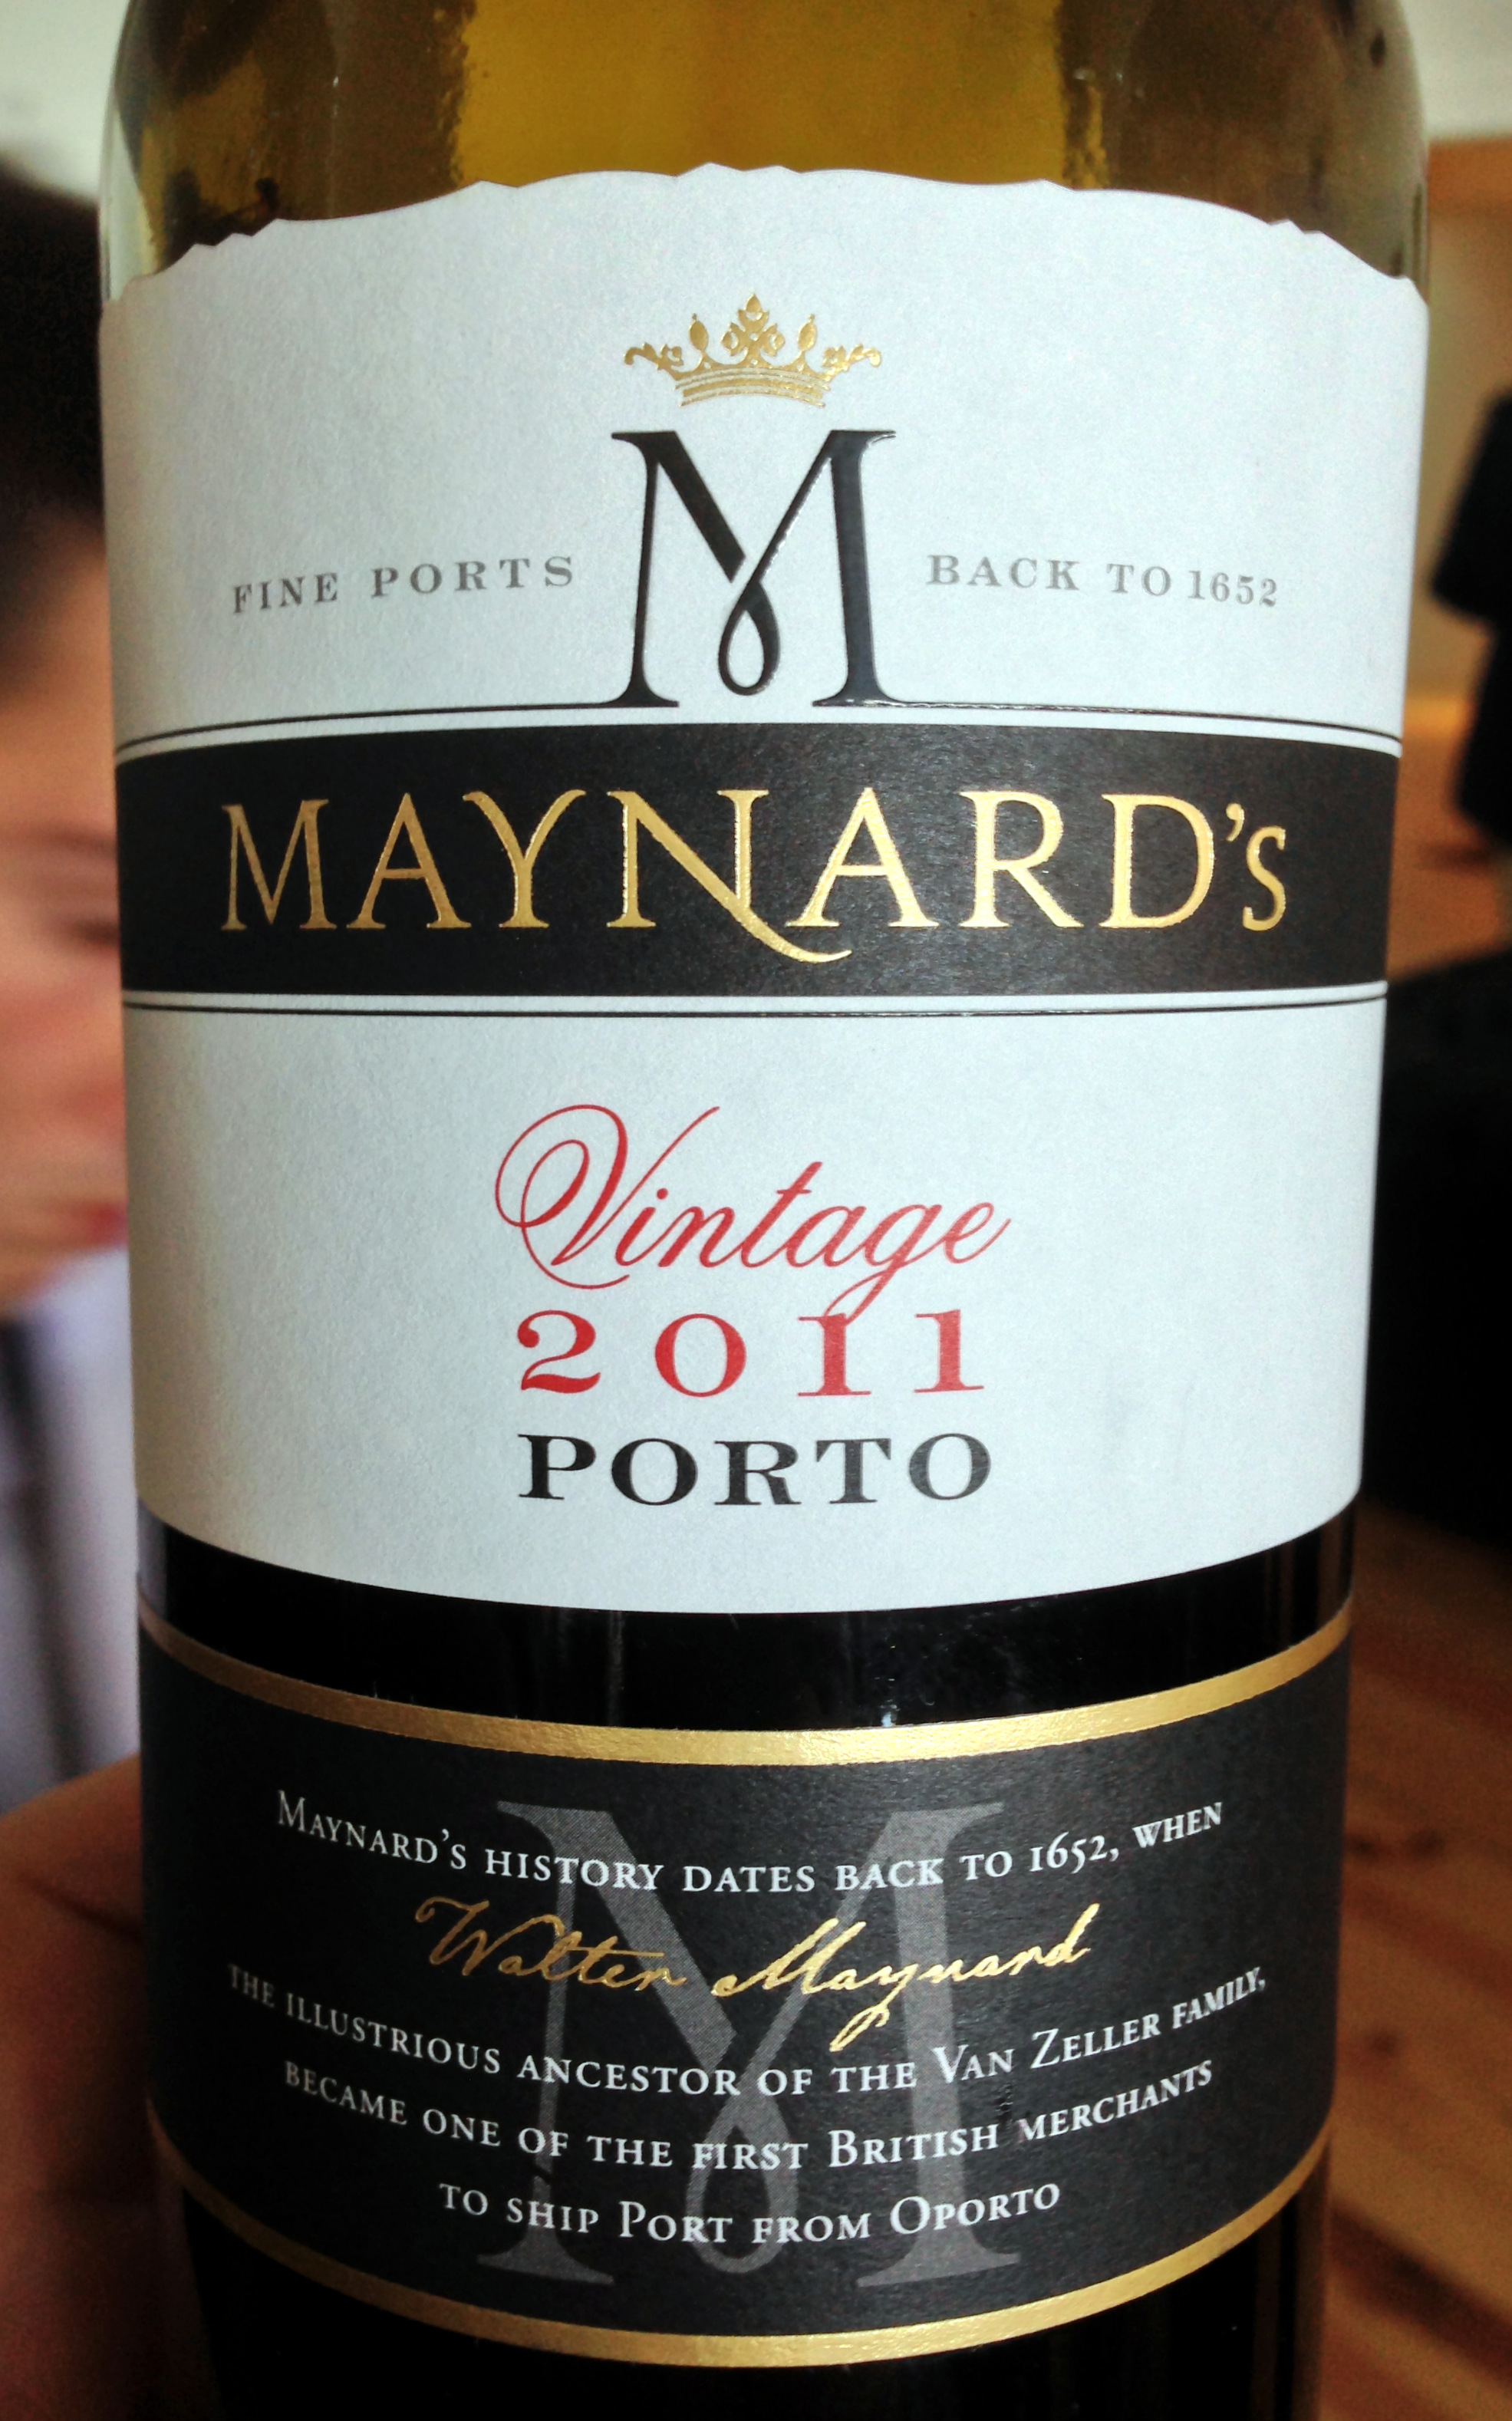 Maynard's: the schocker of the vintage.